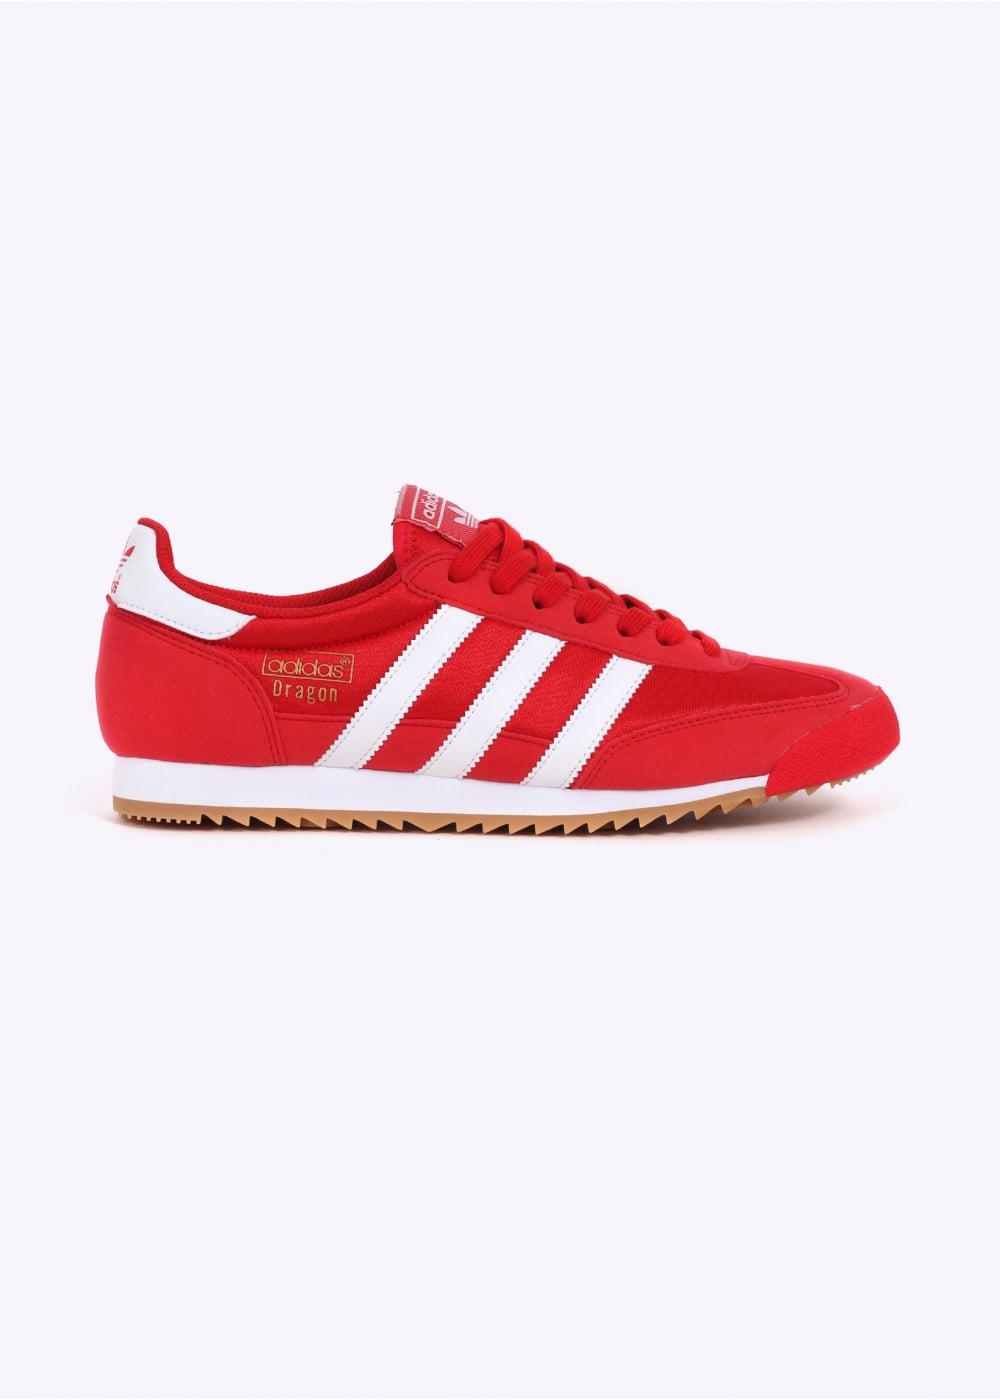 the best attitude 3af52 46898 adidas Originals Footwear Dragon OG - Red - Trainers from Triads UK